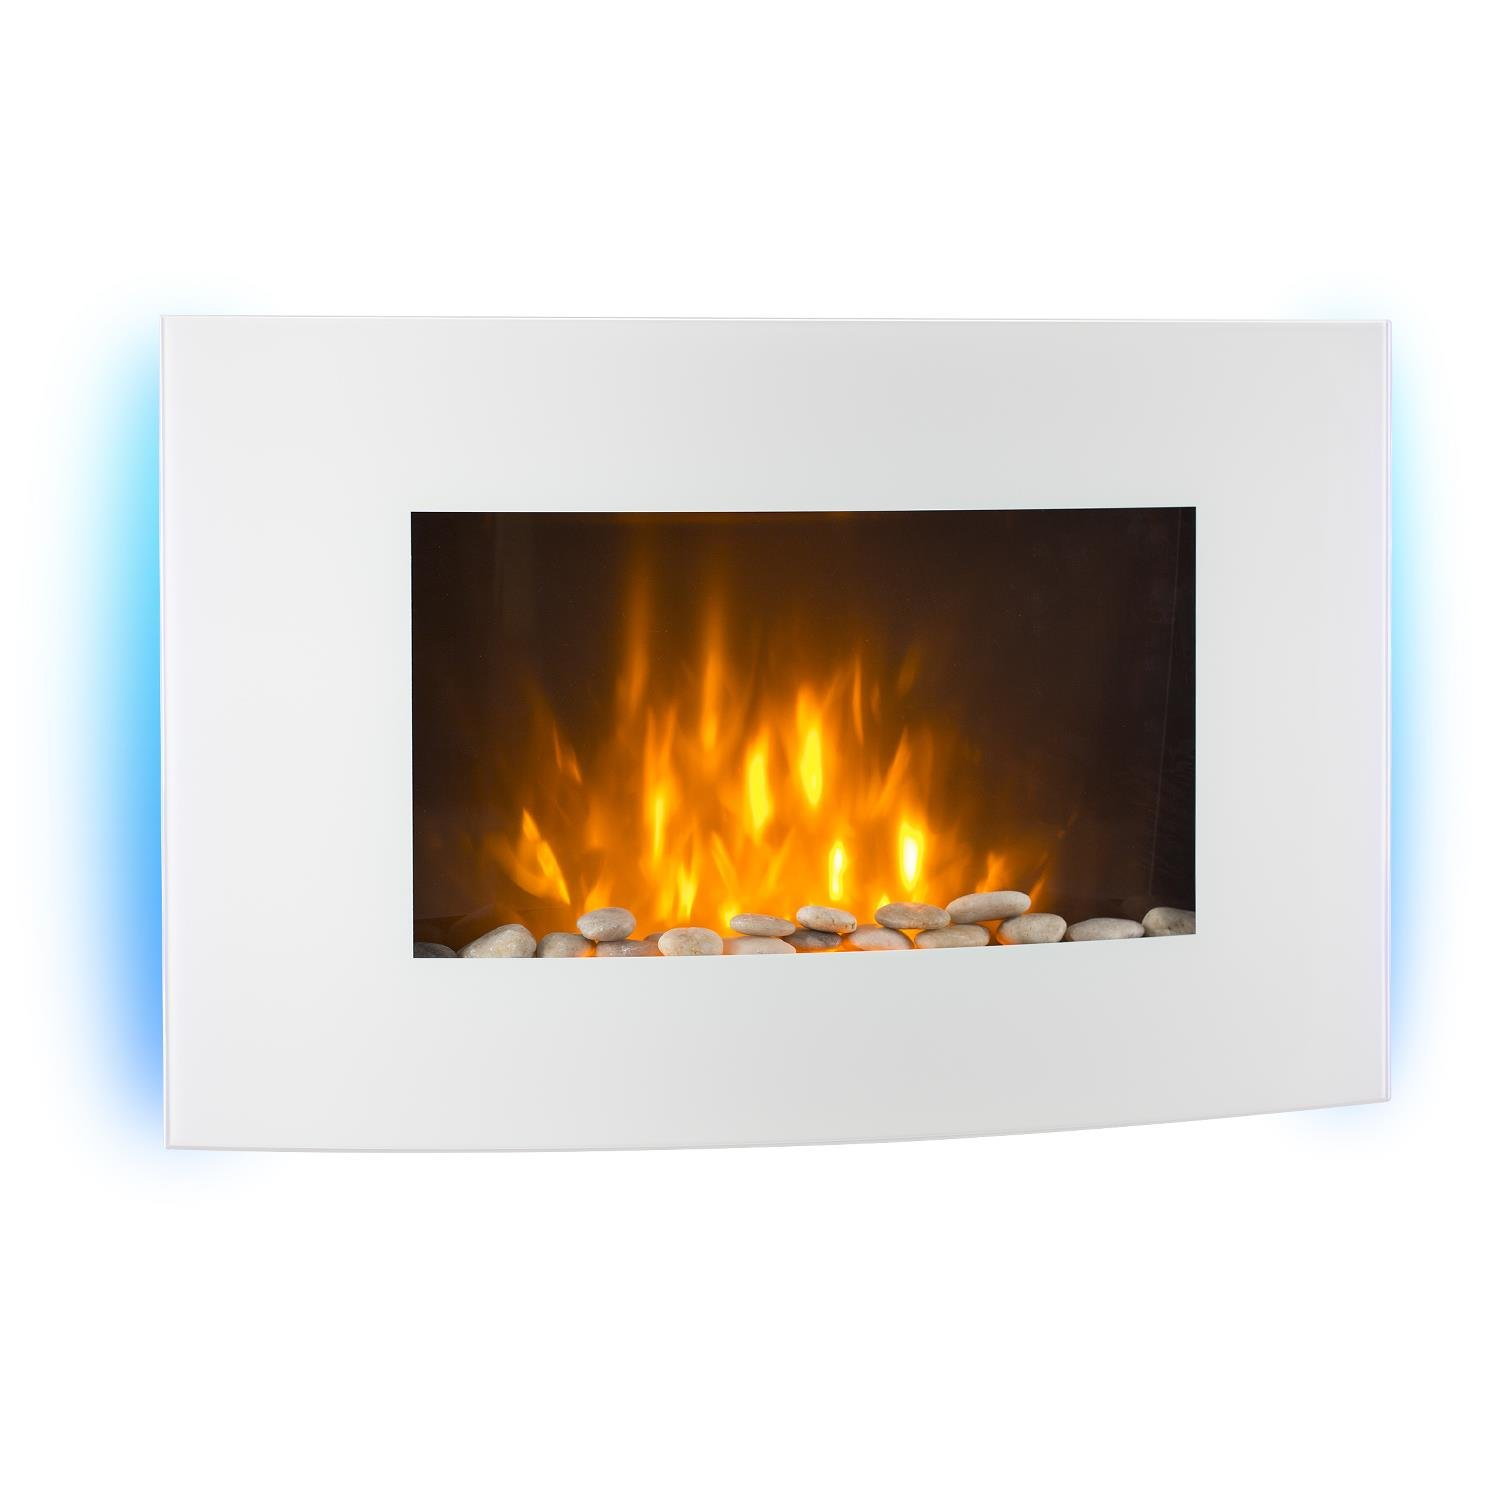 Klarstein Lausanne Electric Fireplace • 2000W • Built-In Fan Heater • Dimmer Function • Color LED Flame Effect • Glass Front Panel • Wall Mountable • Operation via Remote Control Panel • Powerful and Quiet Operation • Dimmer Function • White